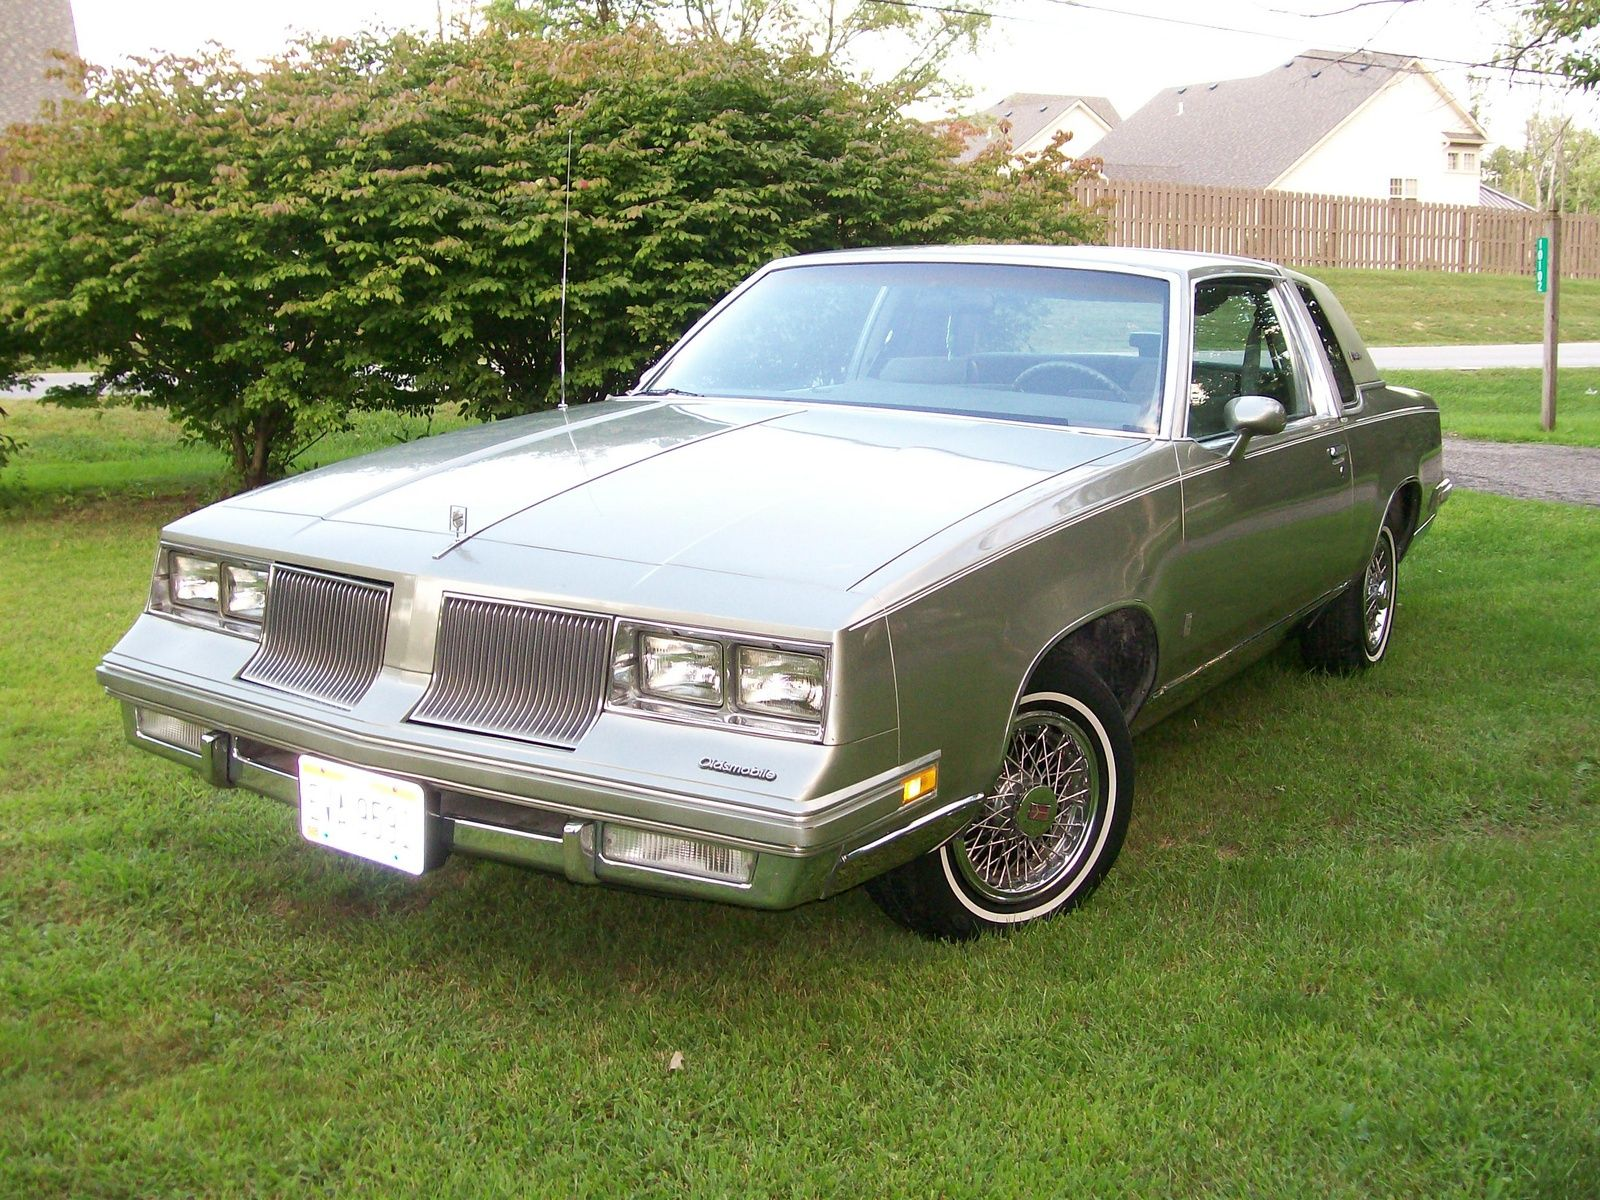 1986 Oldsmobile Cutlass Supreme Mine Was Brown With Tan Vinyl Top Oldsmobile Cutlass Supreme Oldsmobile Cutlass Oldsmobile